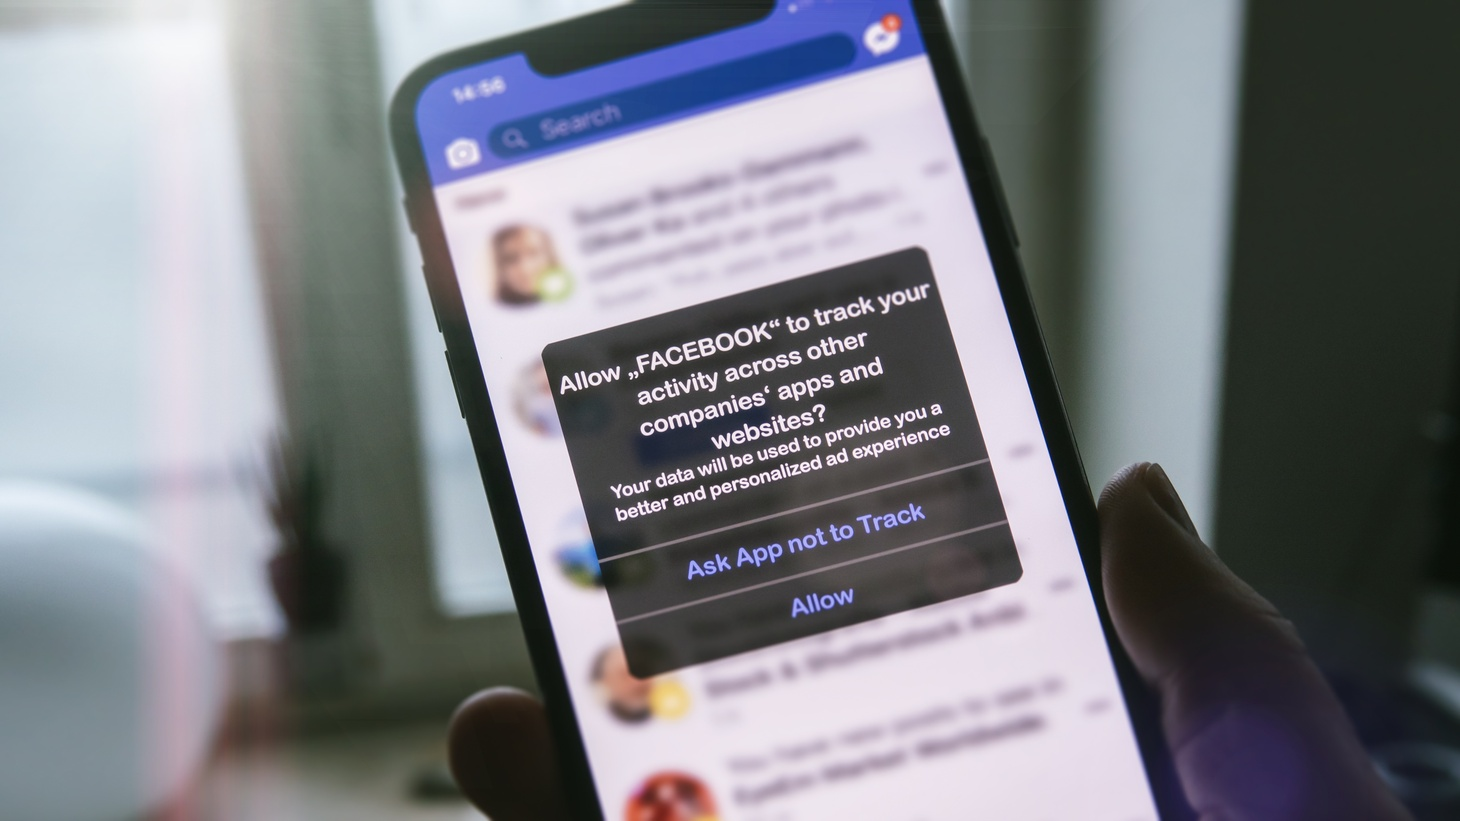 Starting this week, a new update on Apple devices will let users decide whether apps like Facebook can track their data.